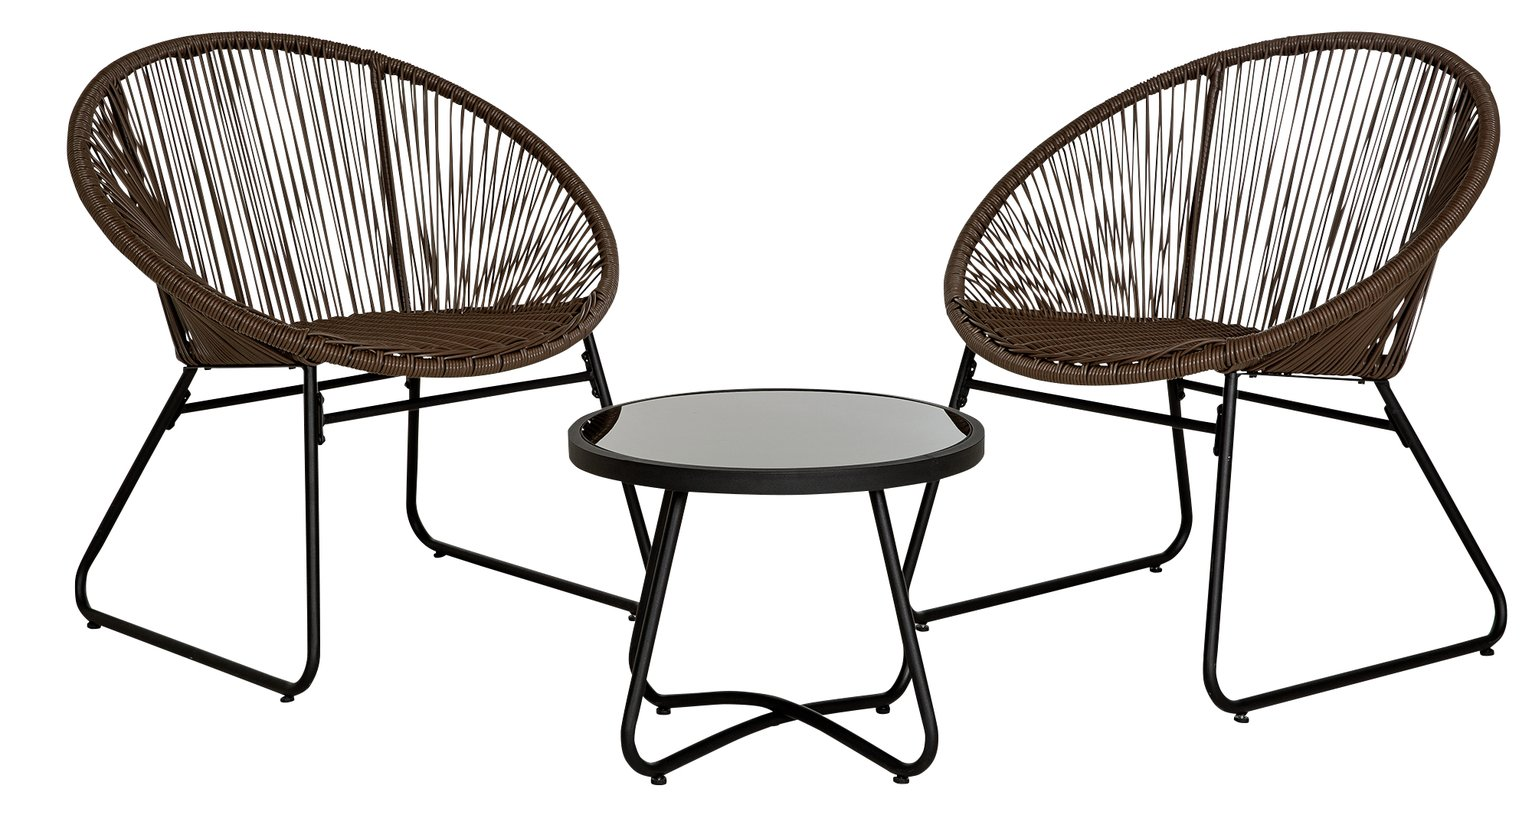 Argos Home 2 Seater Rattan String Bistro Set - Brown